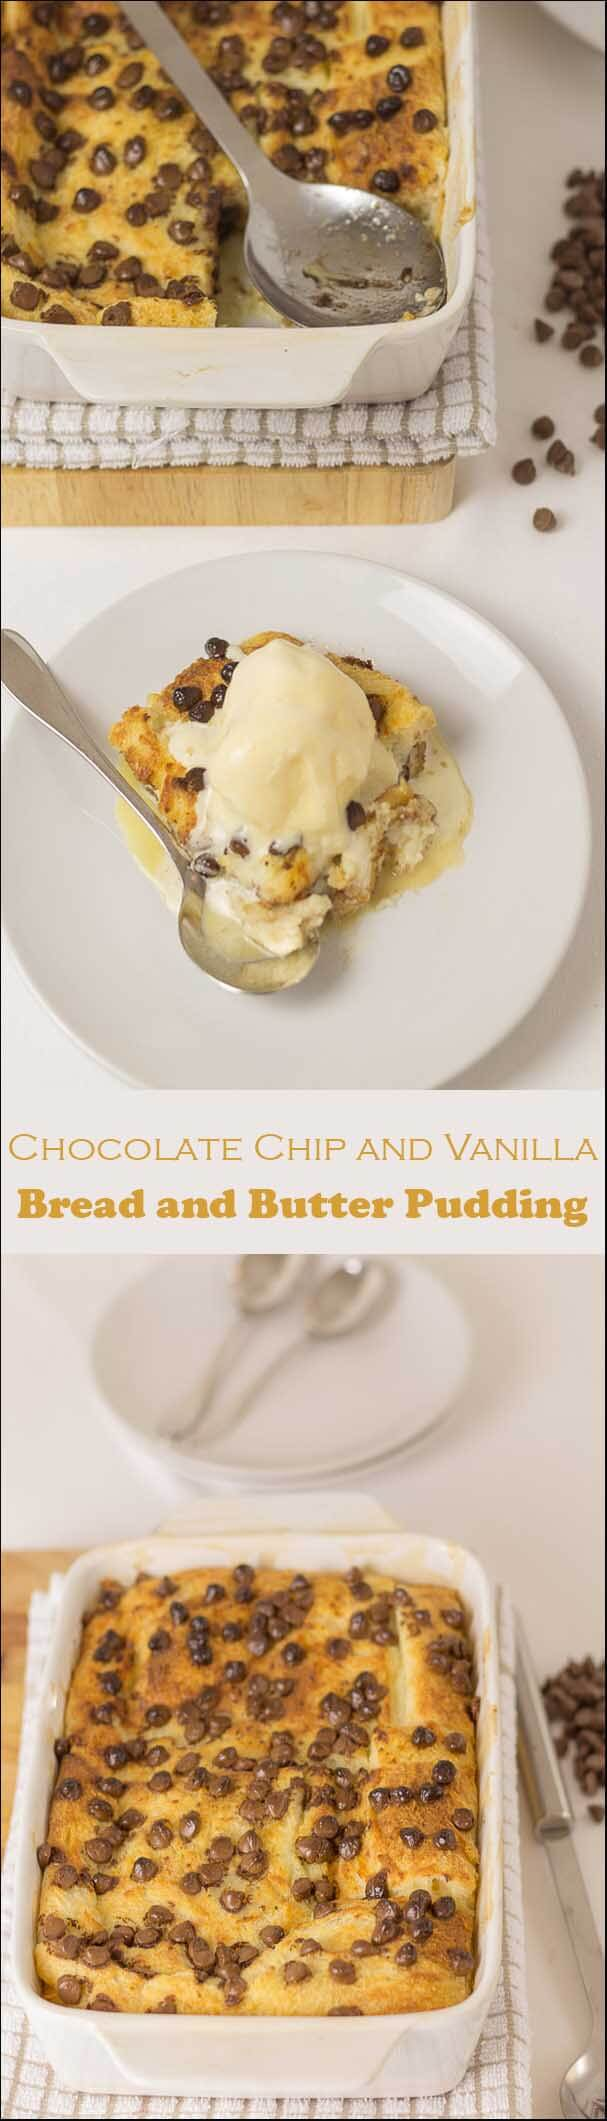 Chocolate chip and vanilla bread and butter pudding is just chocolate pudding heaven! It's bread and butter pudding with an indulgent twist and it's pretty simple to make too!